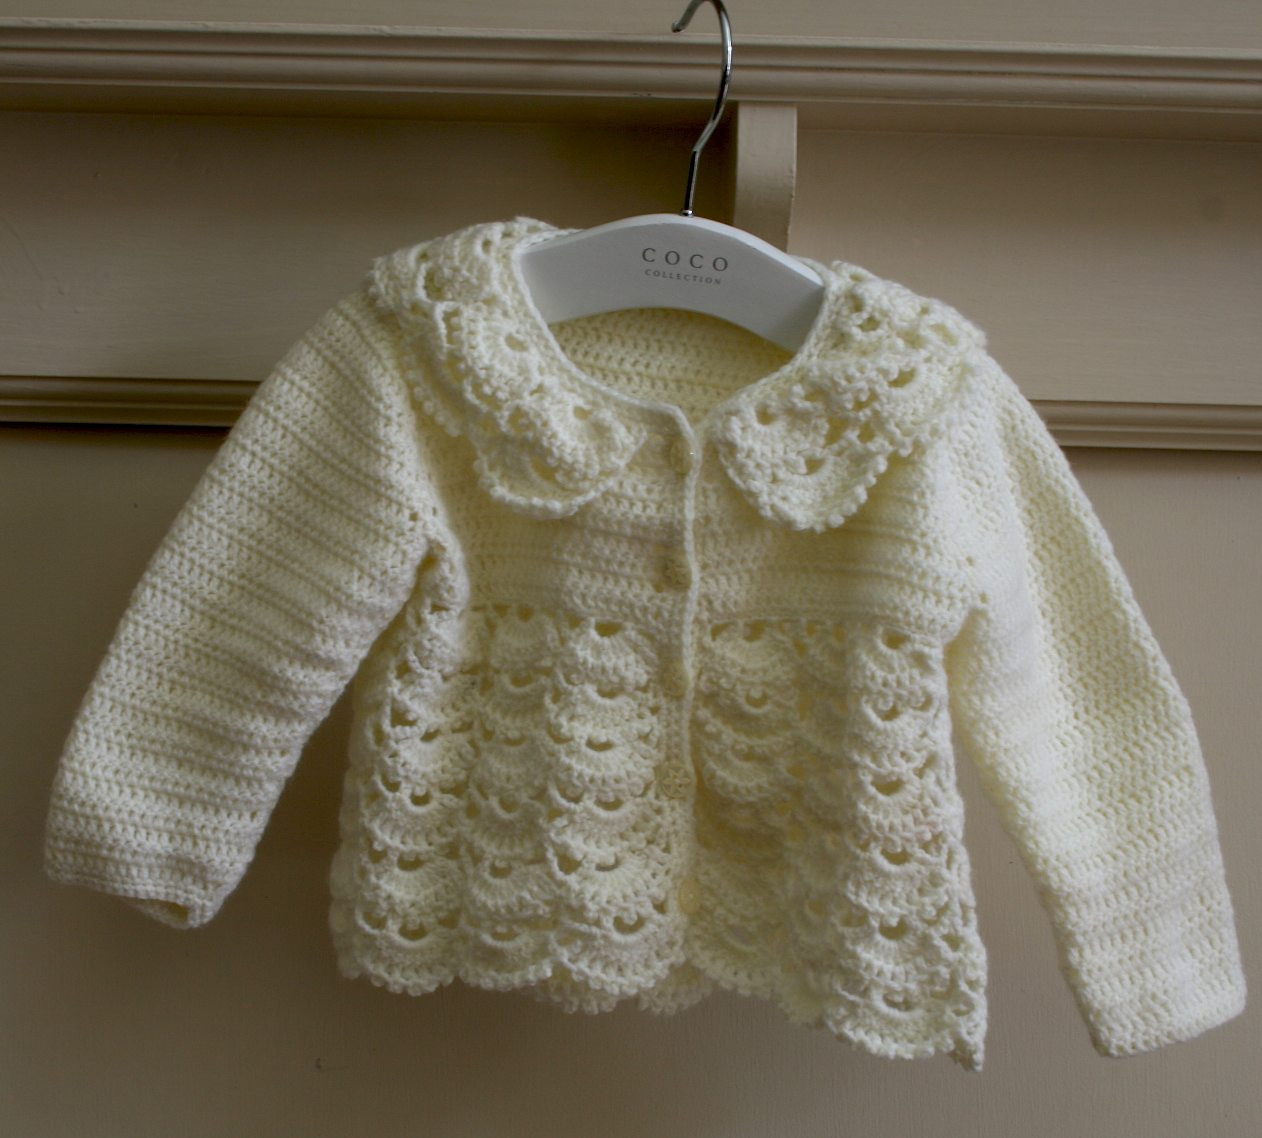 Crochet toddler Sweater Elegant Crocheted Lacy Baby Cardigan Of Lovely 50 Photos Crochet toddler Sweater